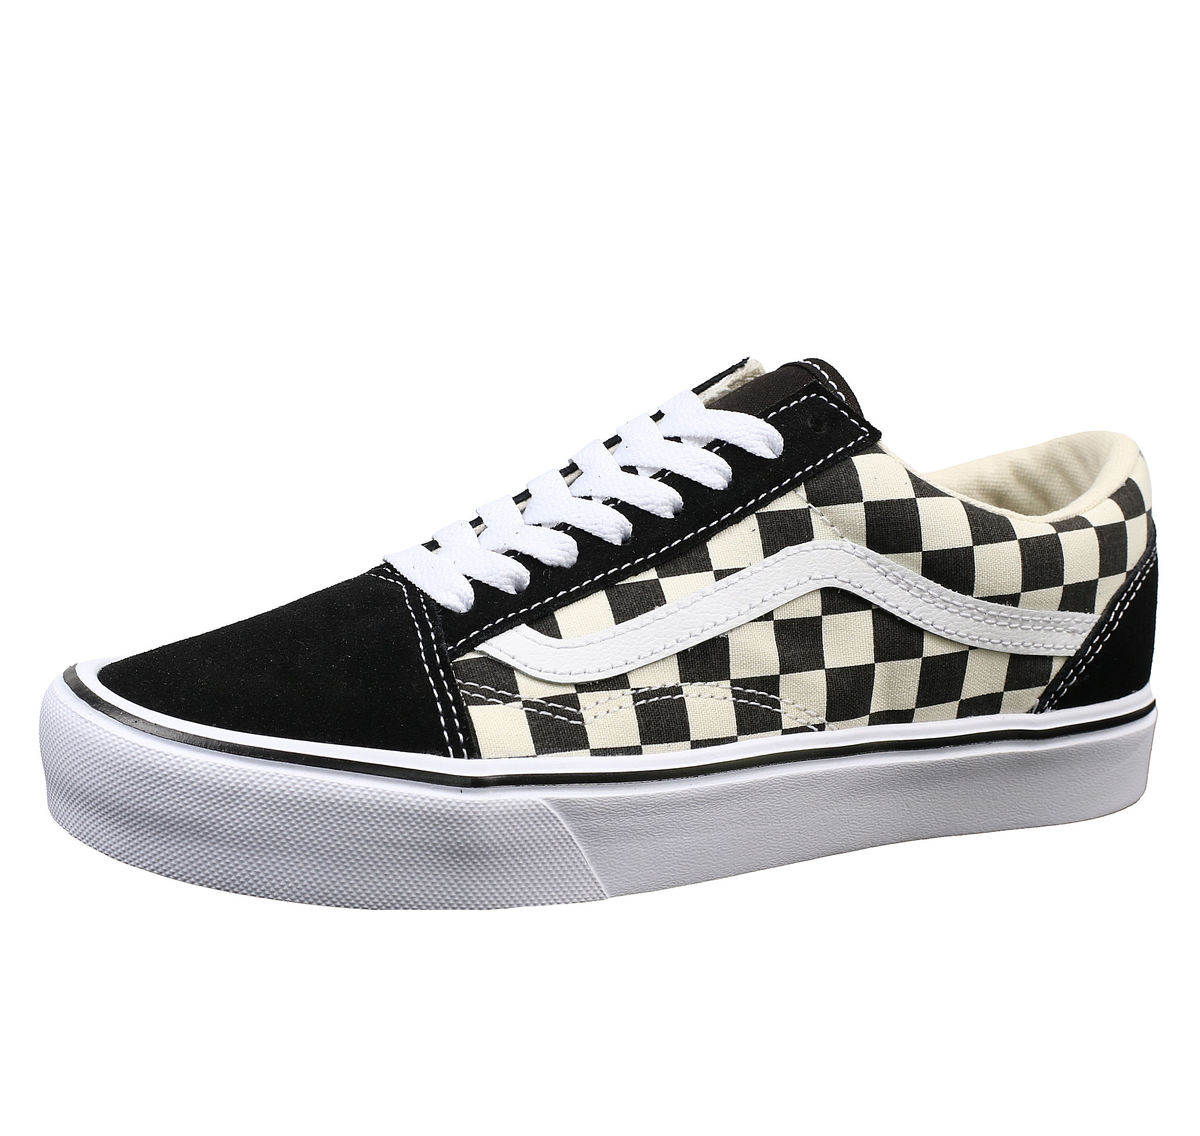 (Sold out) boty VANS - UA OLD SKOOL LITE (Checkerboard) - Black  White 038f879e0a0